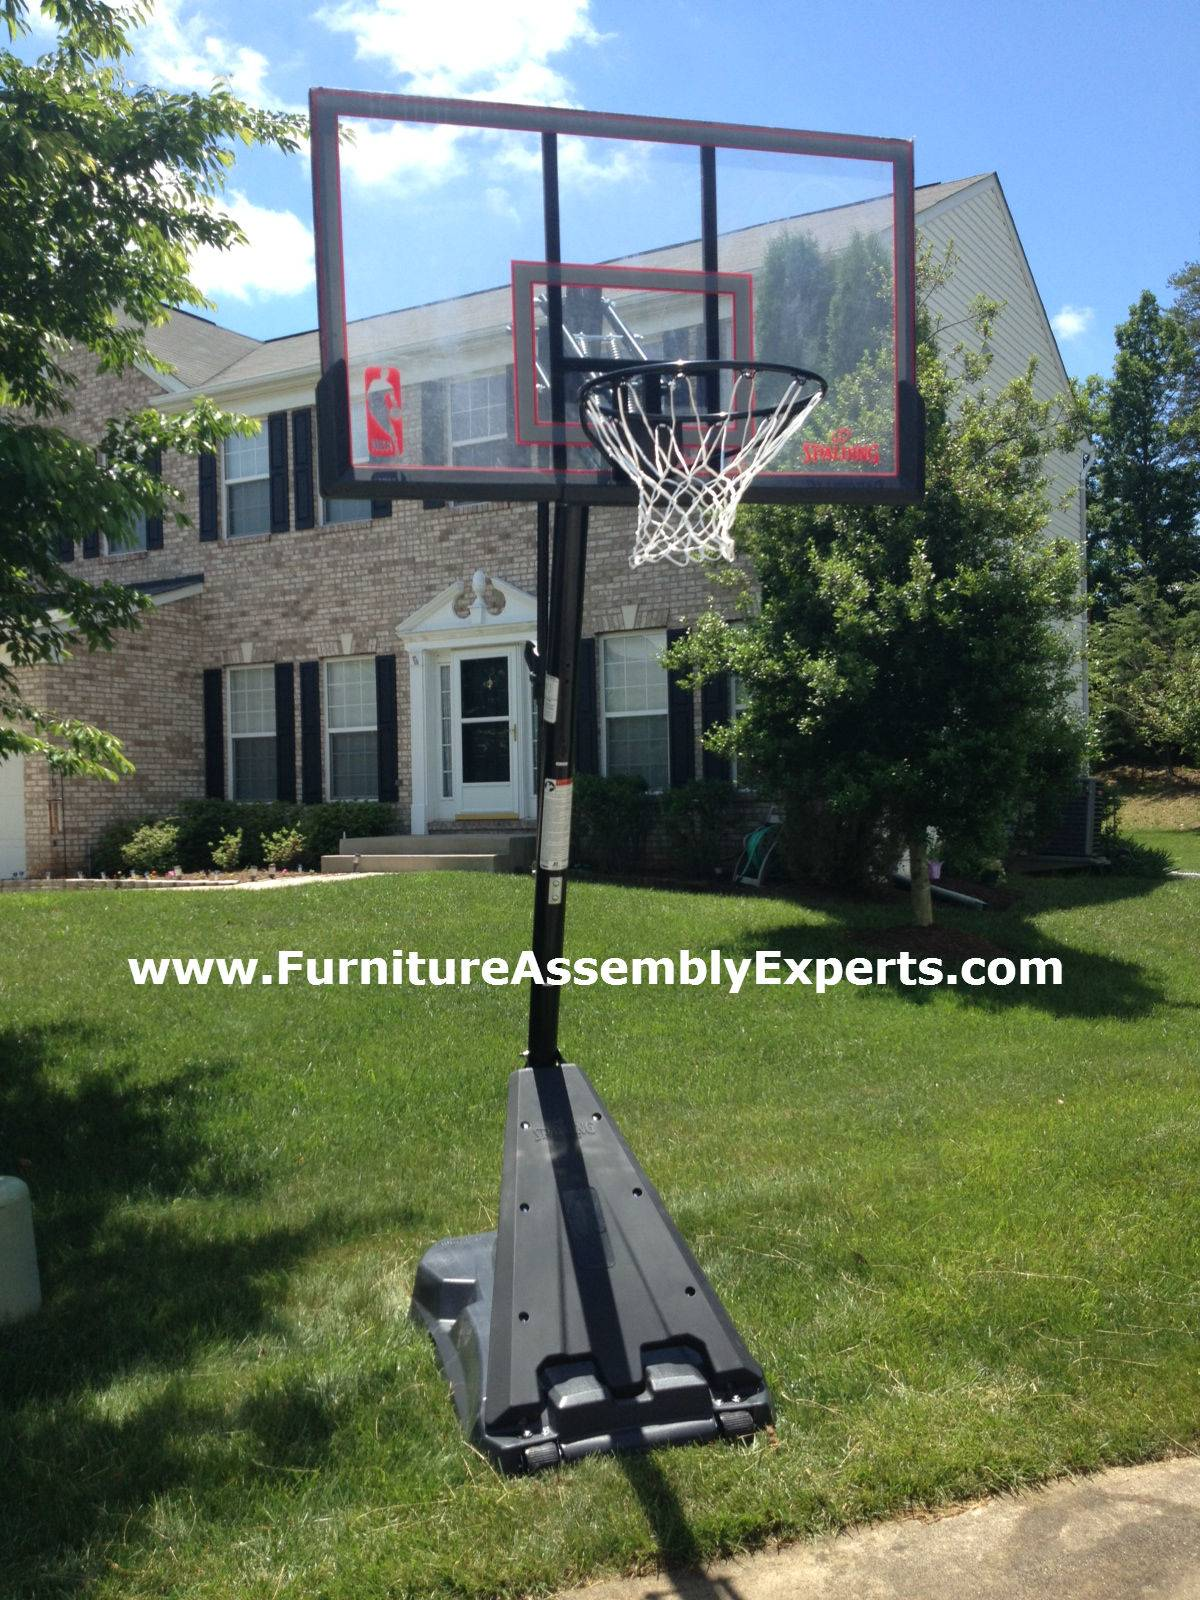 amazon portable basketball hoop assembly service in DC MD VA